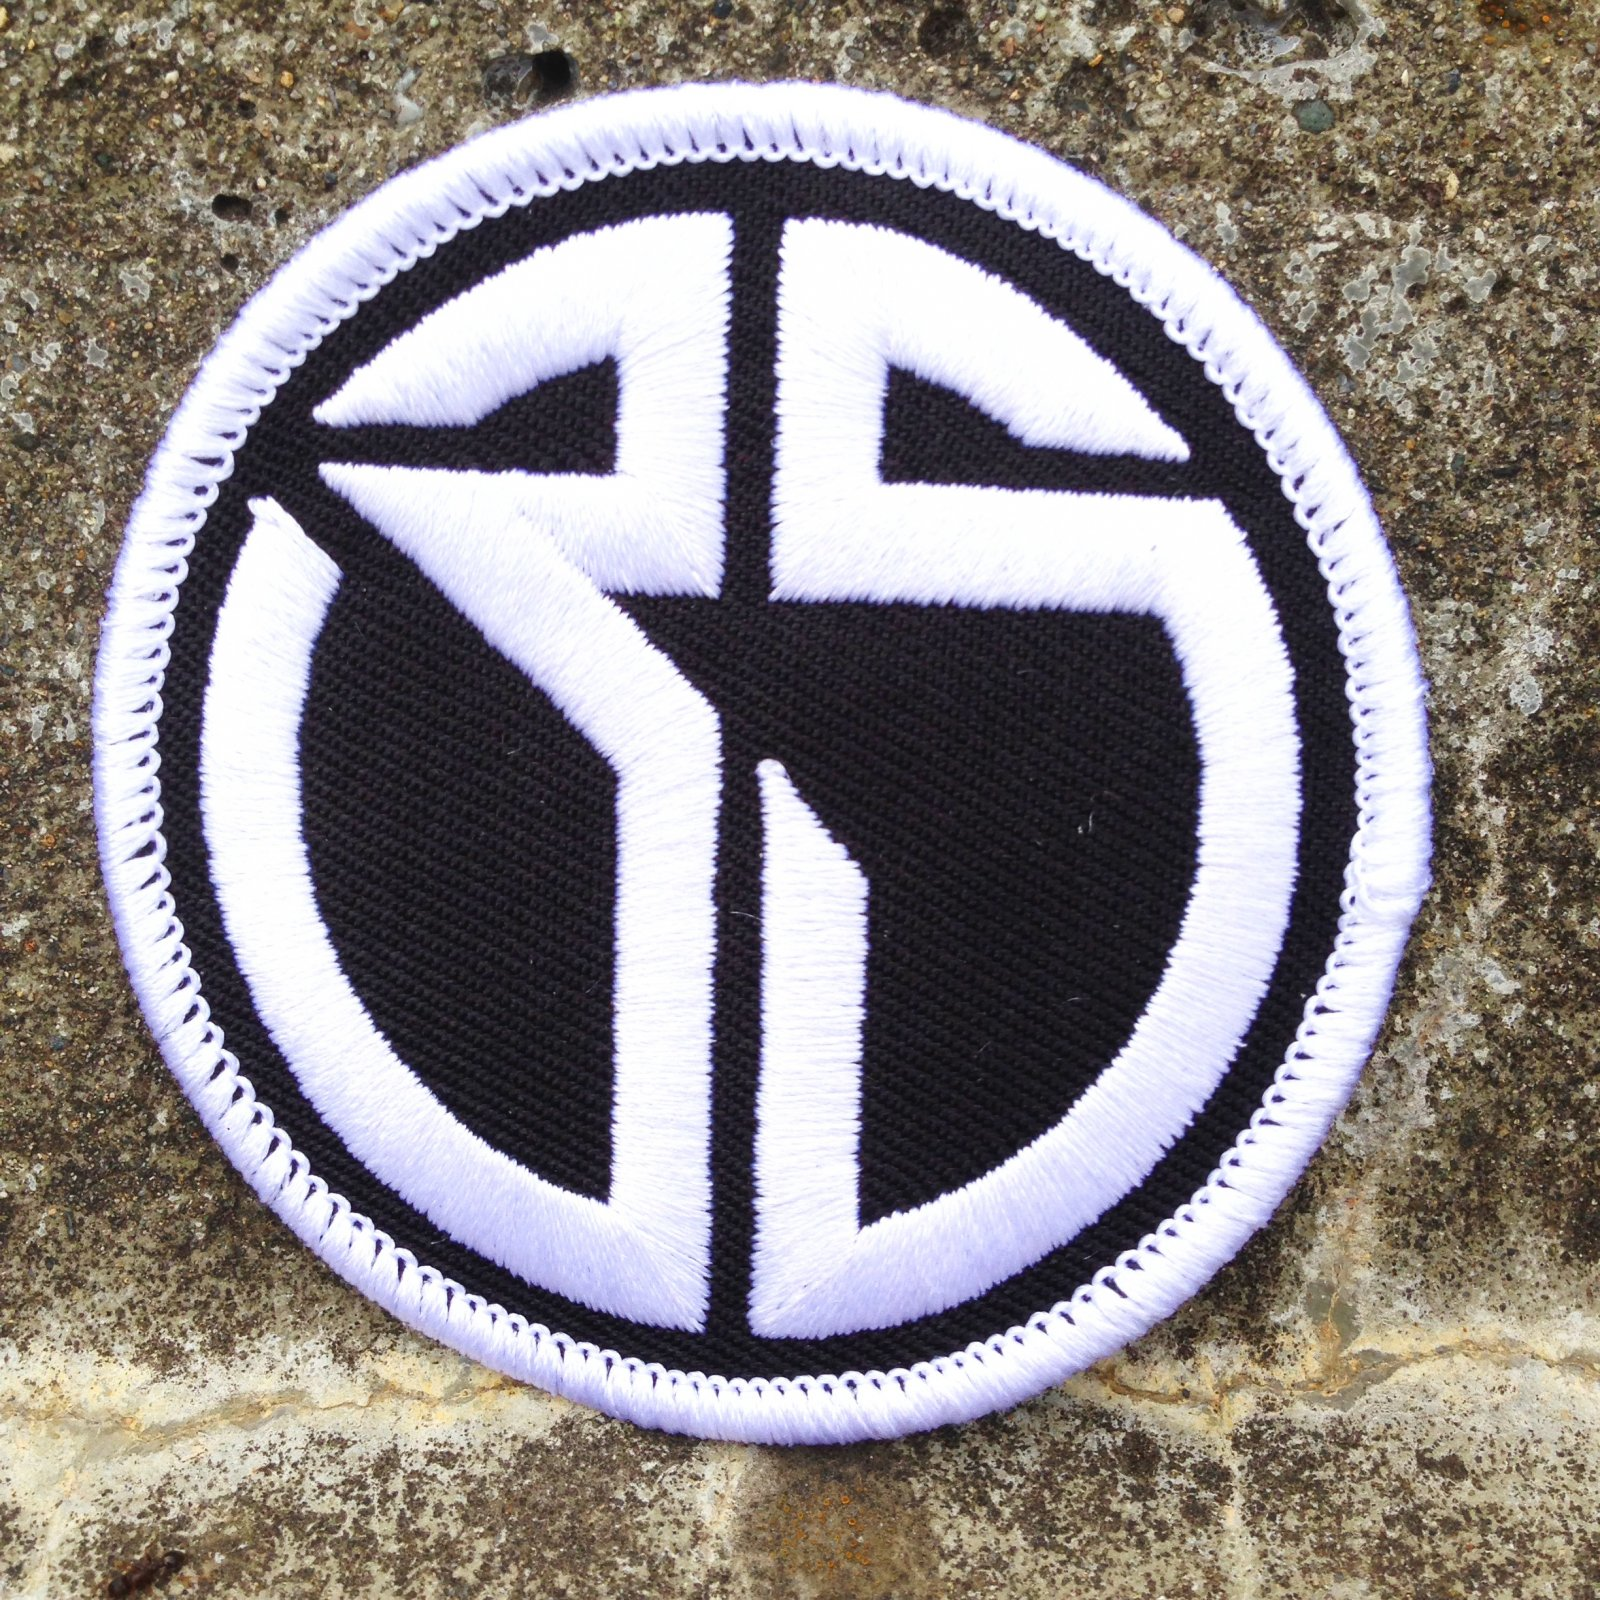 35th Circle Logo patch